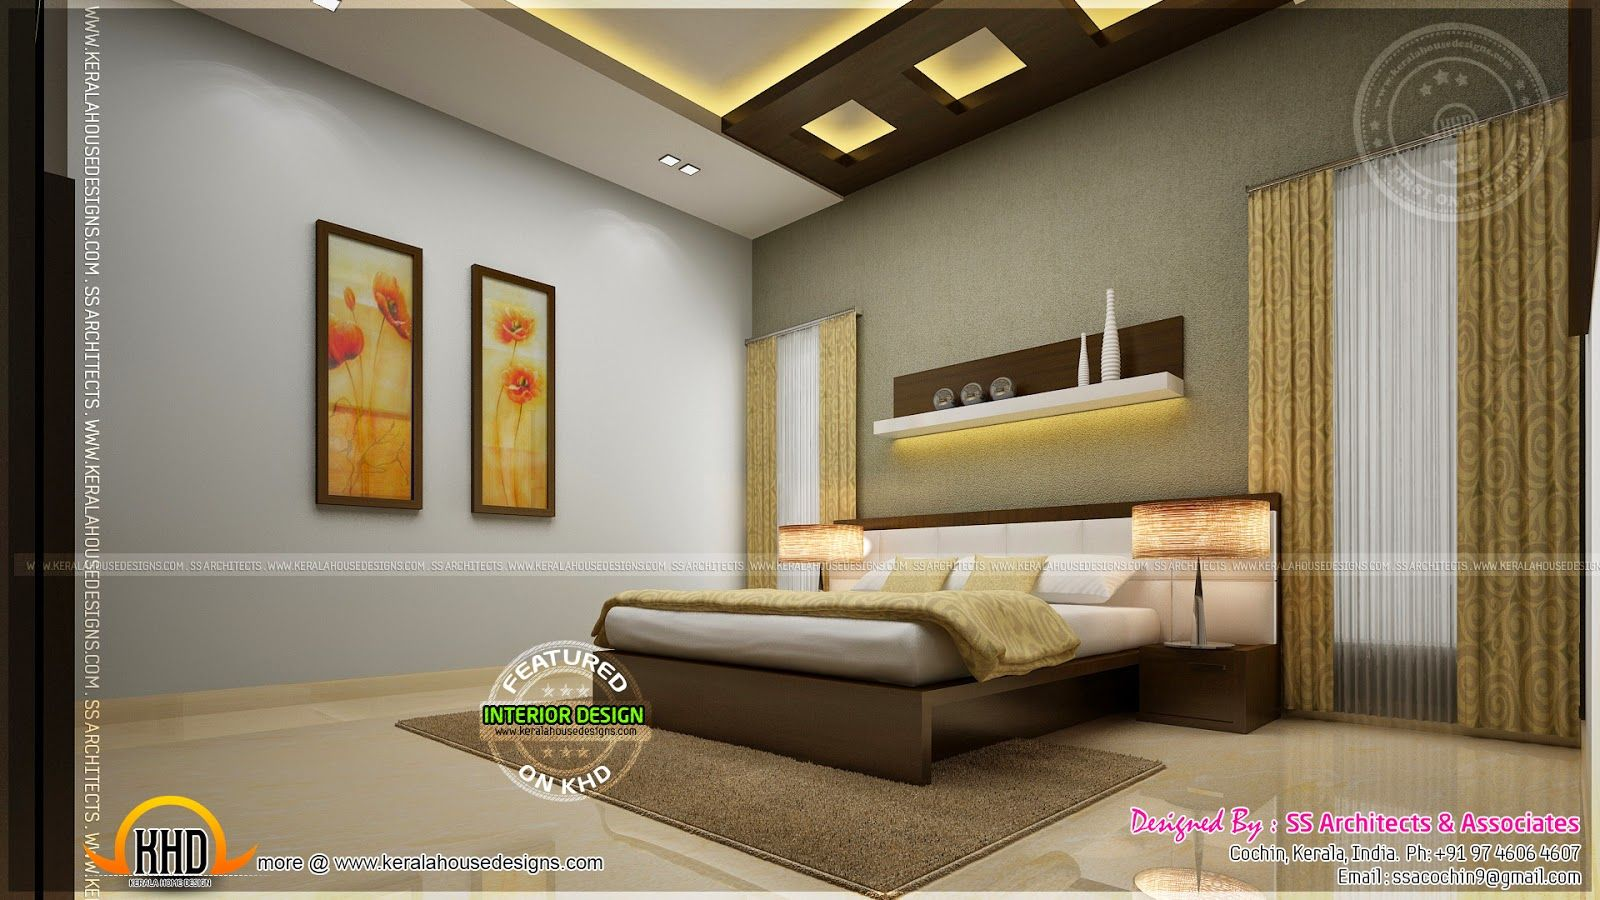 Indian master bedroom interior design google search for Model bedroom interior design